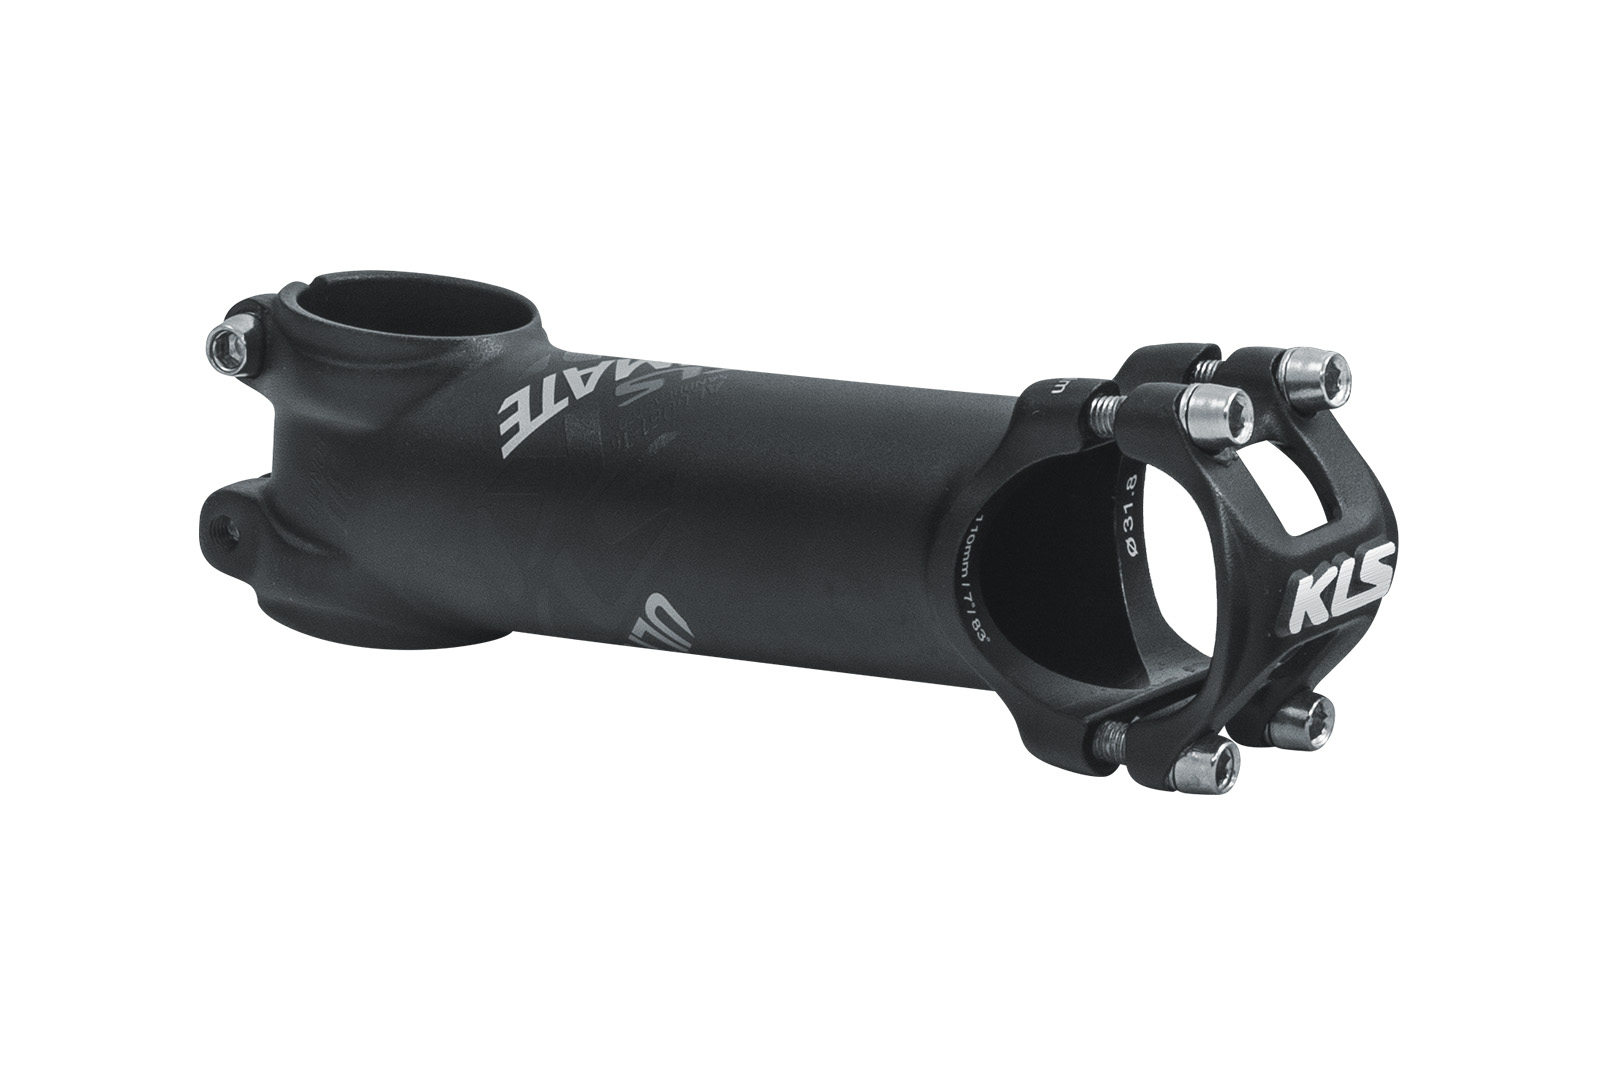 Představec KLS ULTIMATE XC 70 black 017, 100mm